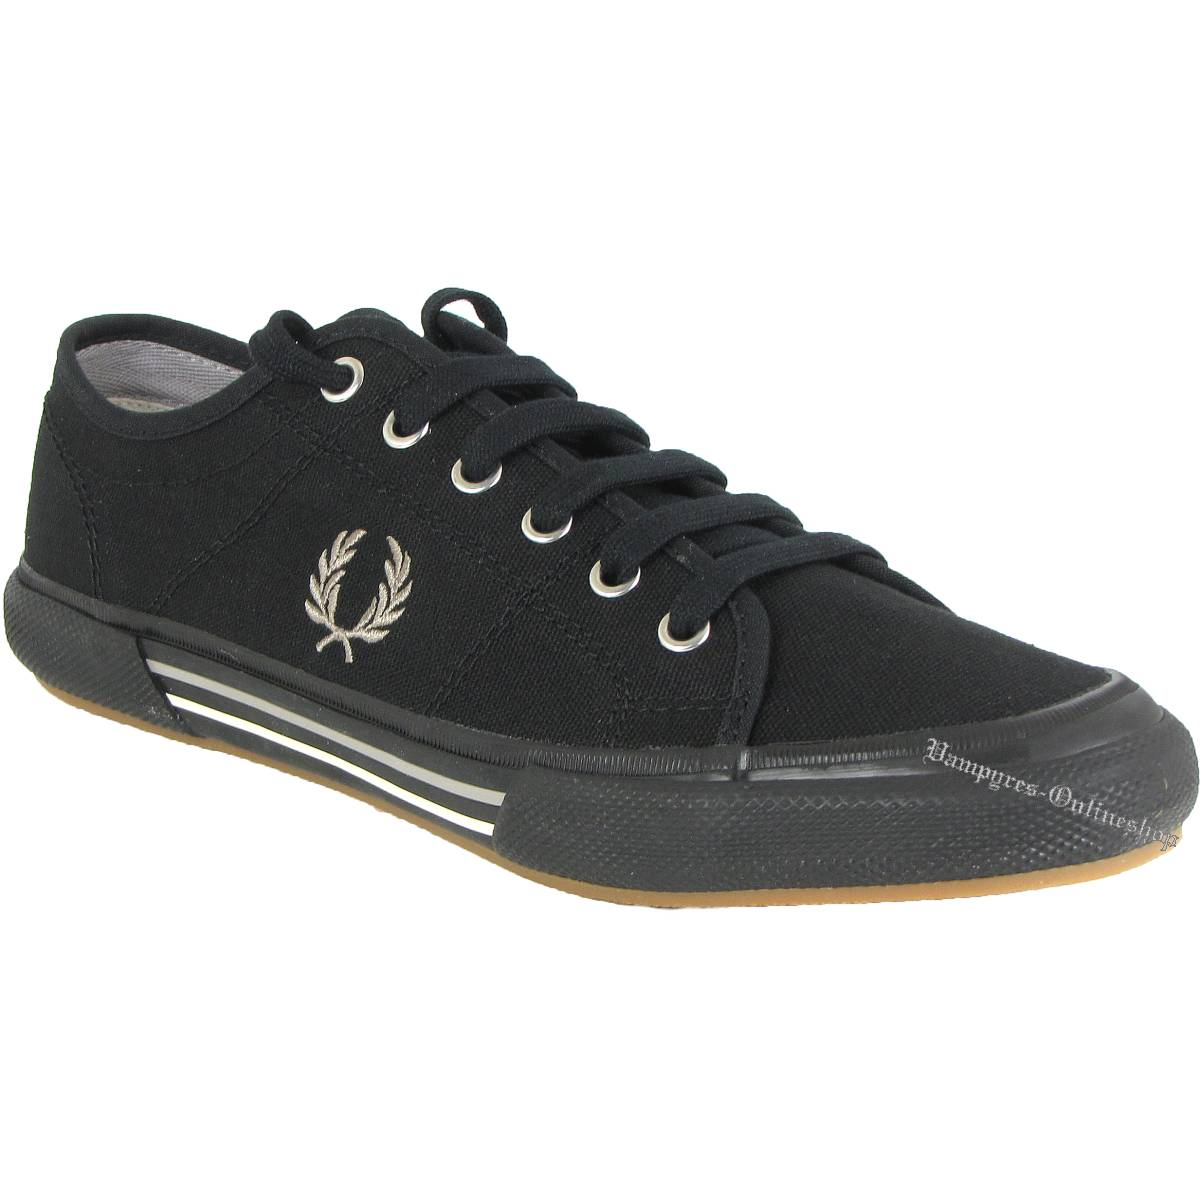 Fred Perry Vintage Tennis Canvas B4249 Sneaker Schwarz